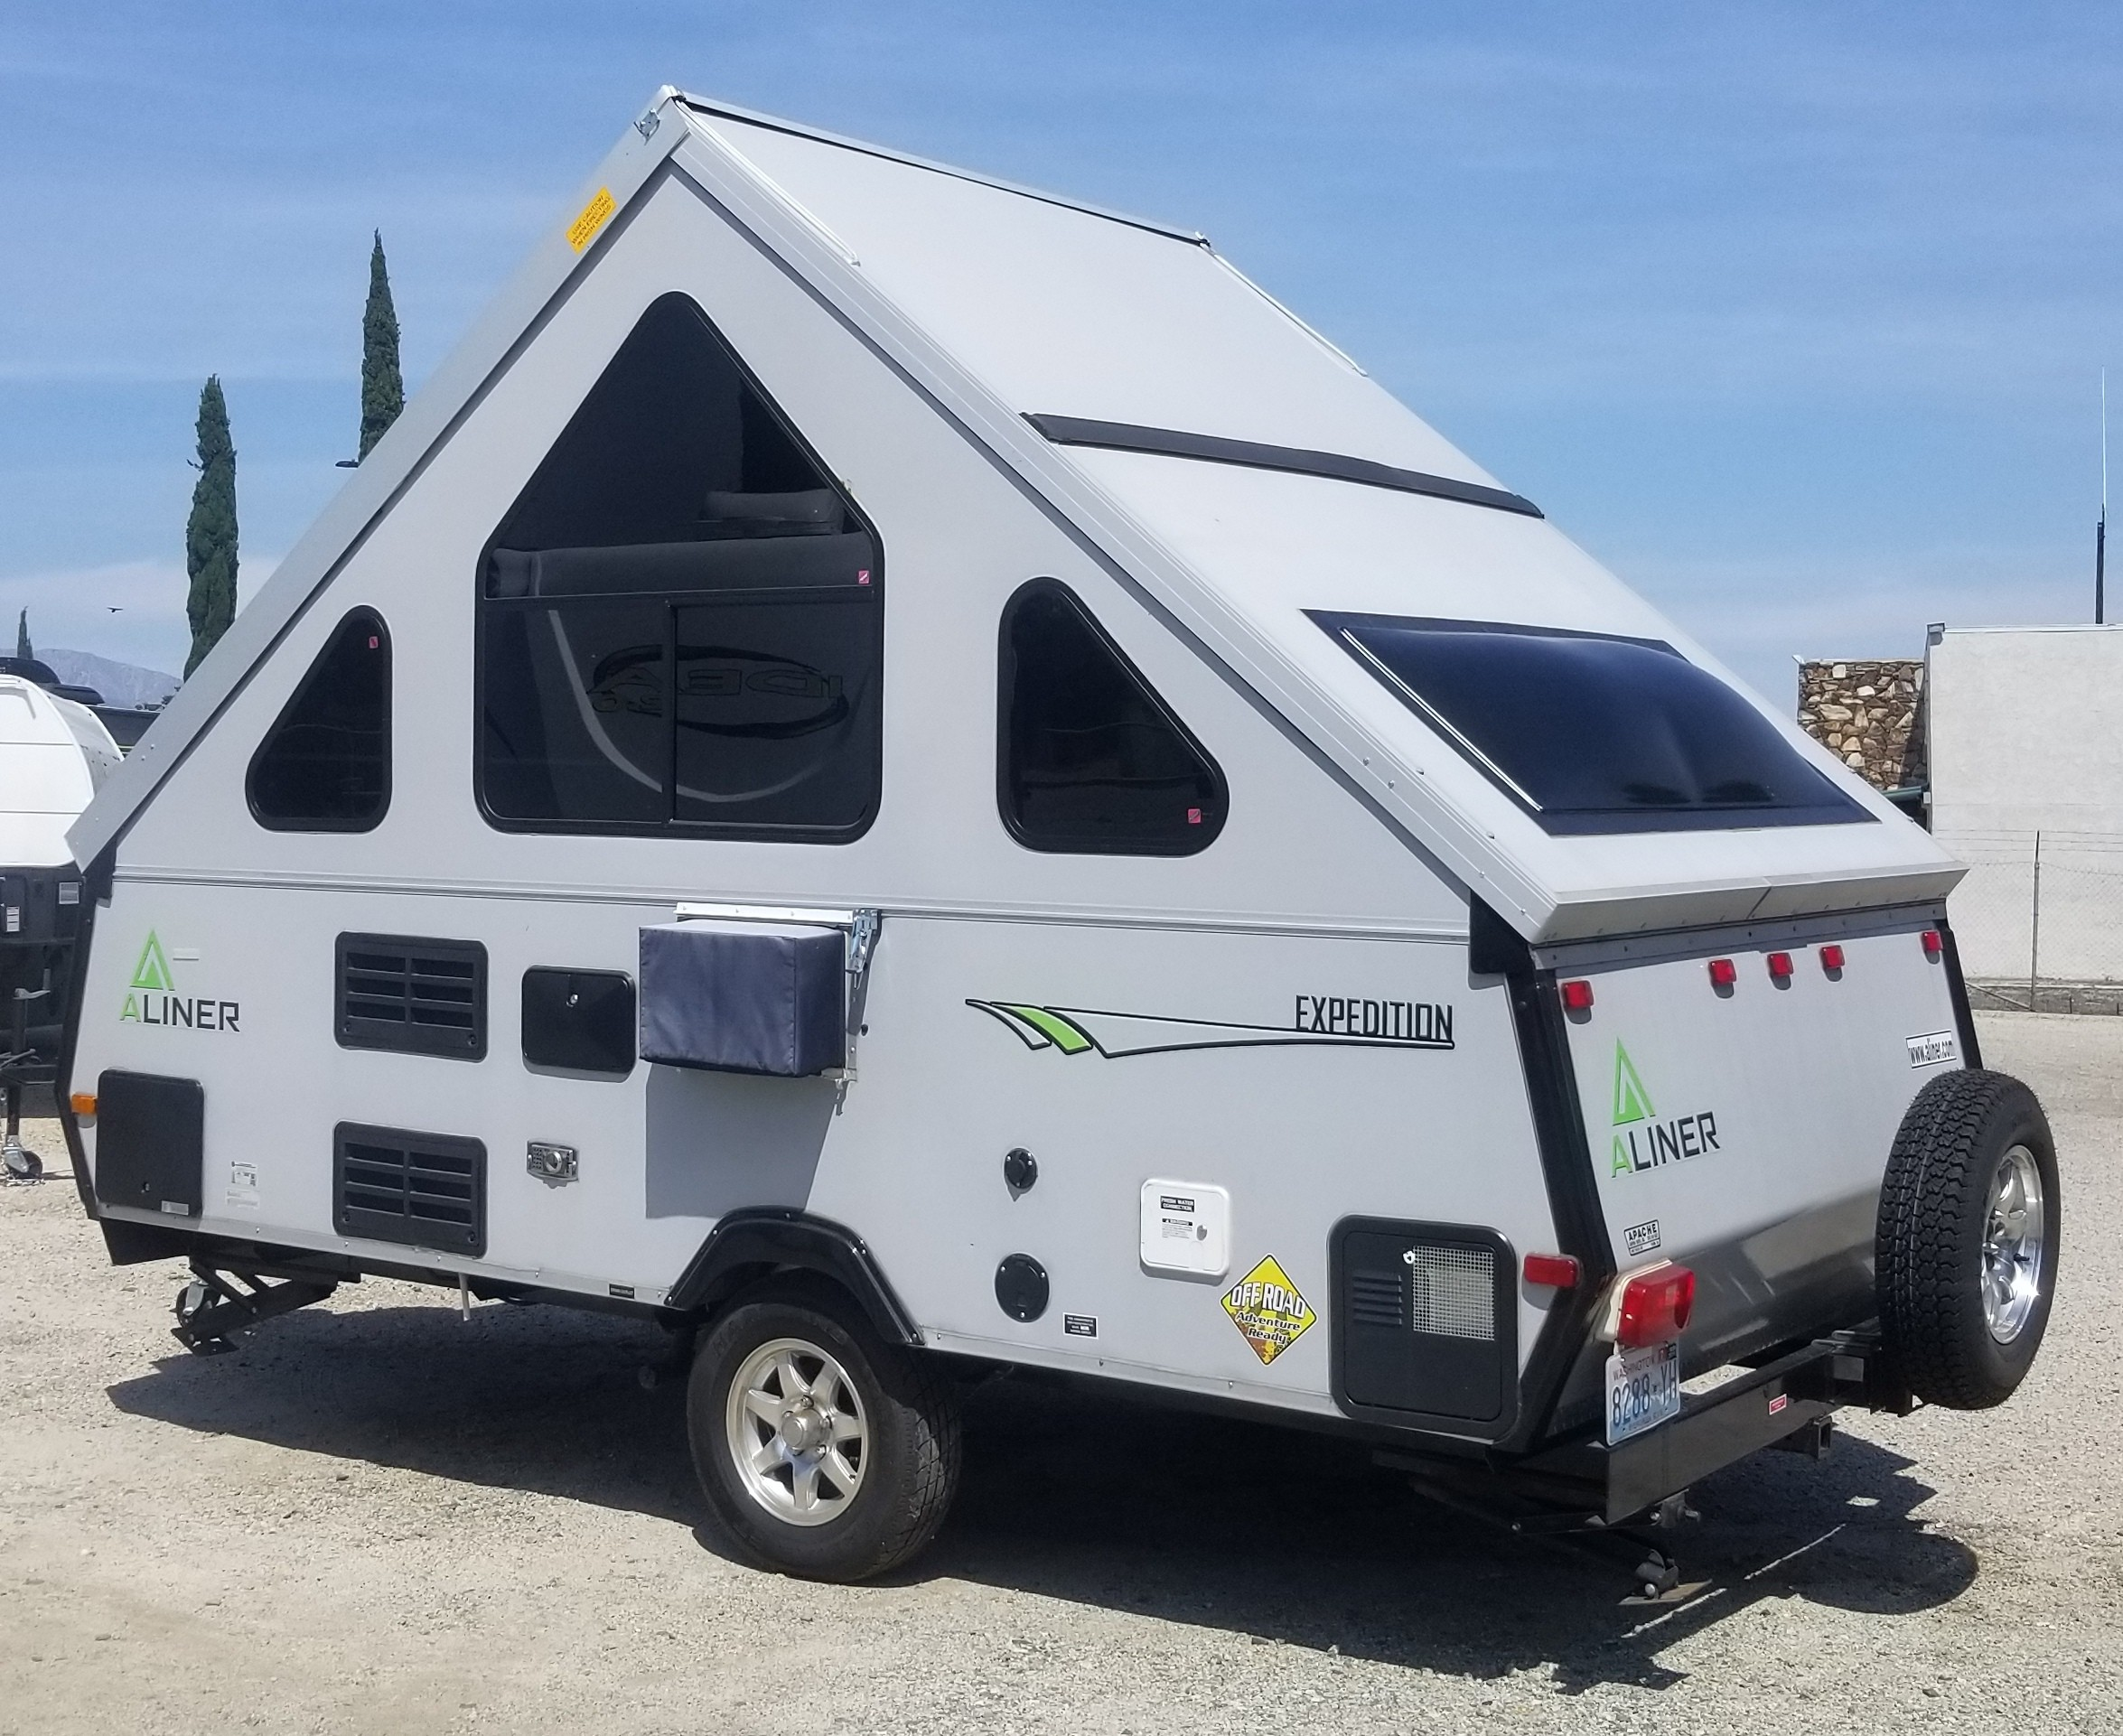 Used 2014 Aliner Expedition in Beaumont, CA